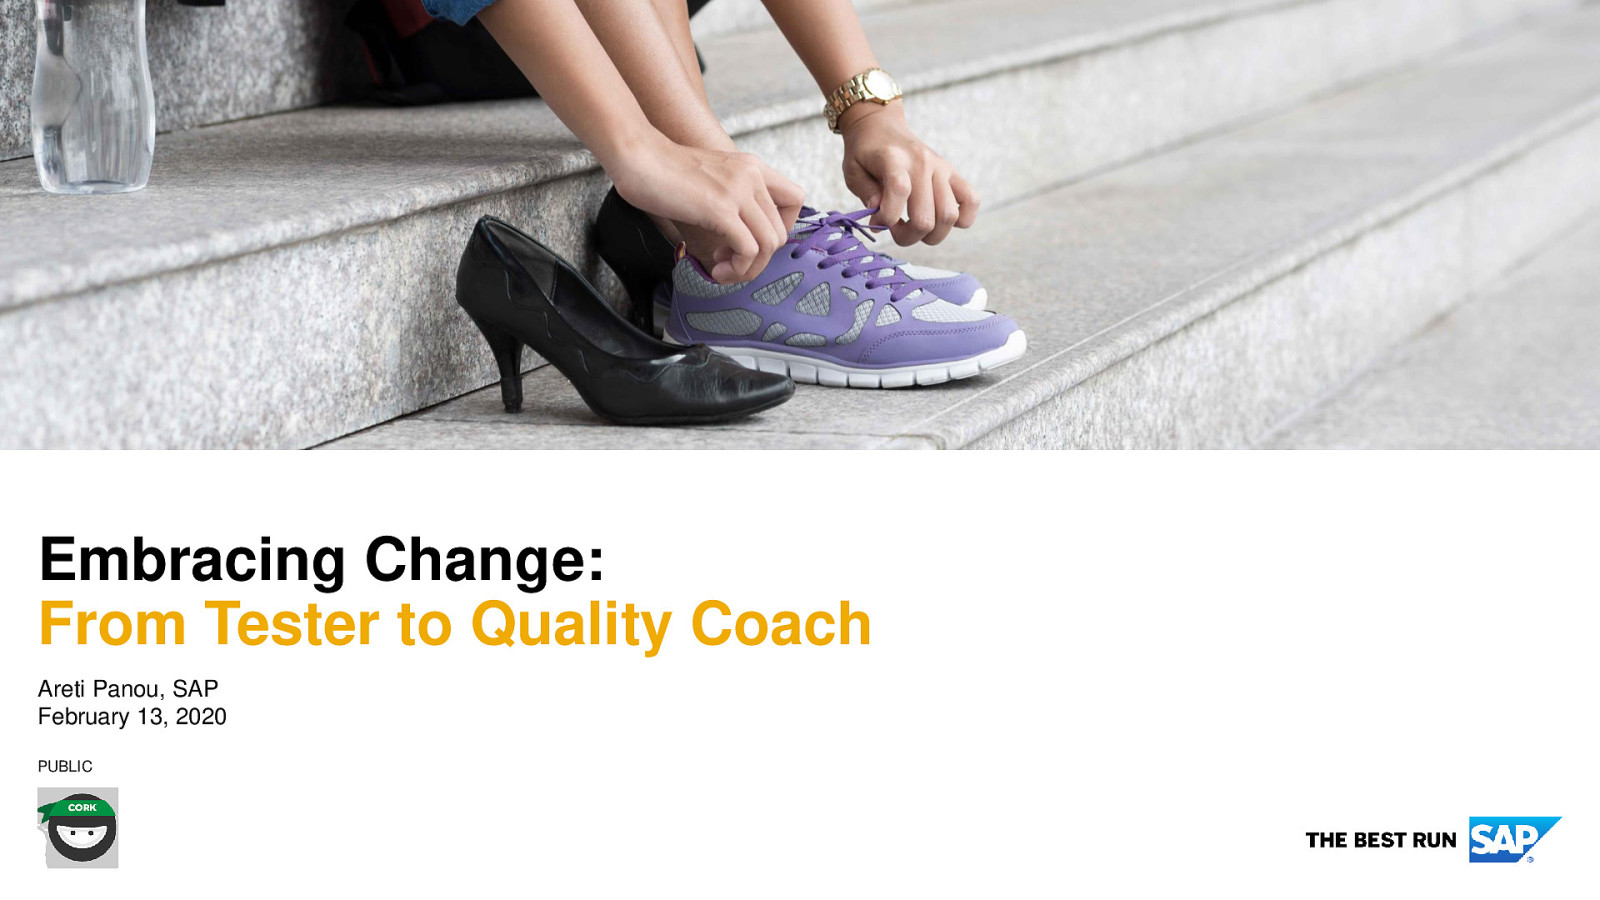 Embracing Change: From Tester to Quality Coach